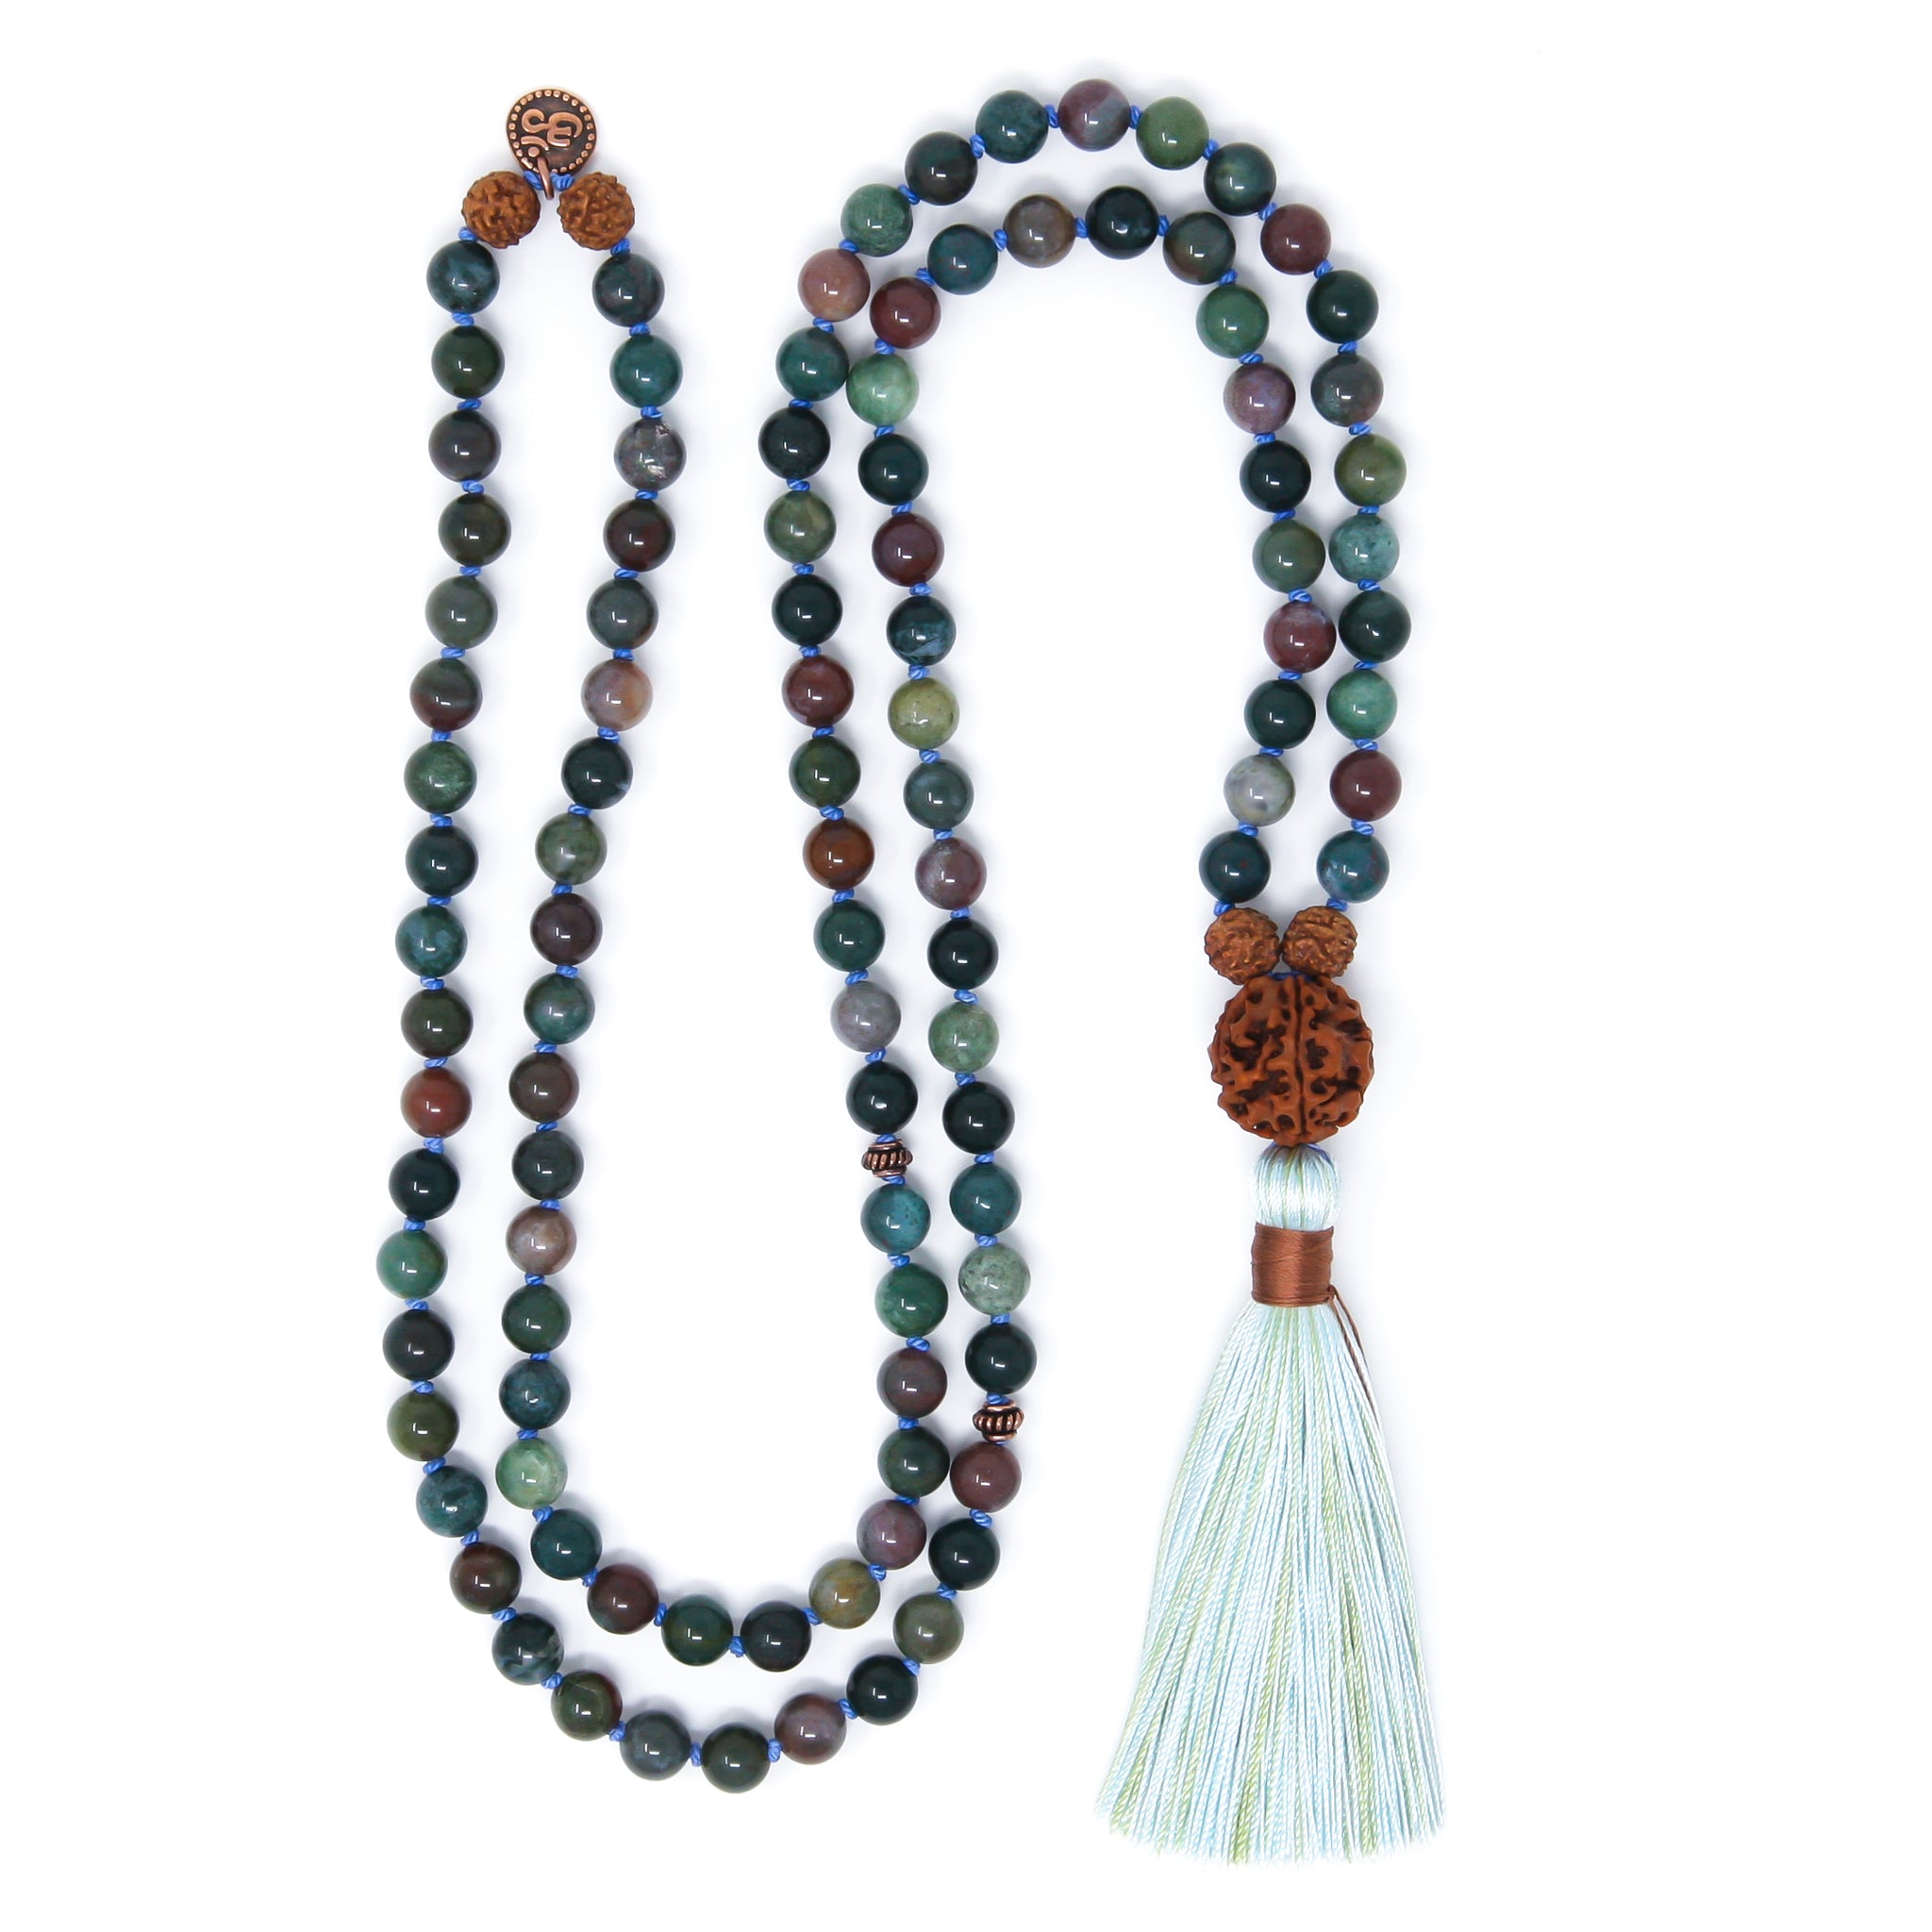 about be find for learn how img mala so right necklace beads hum yoga jewelry pages to the you